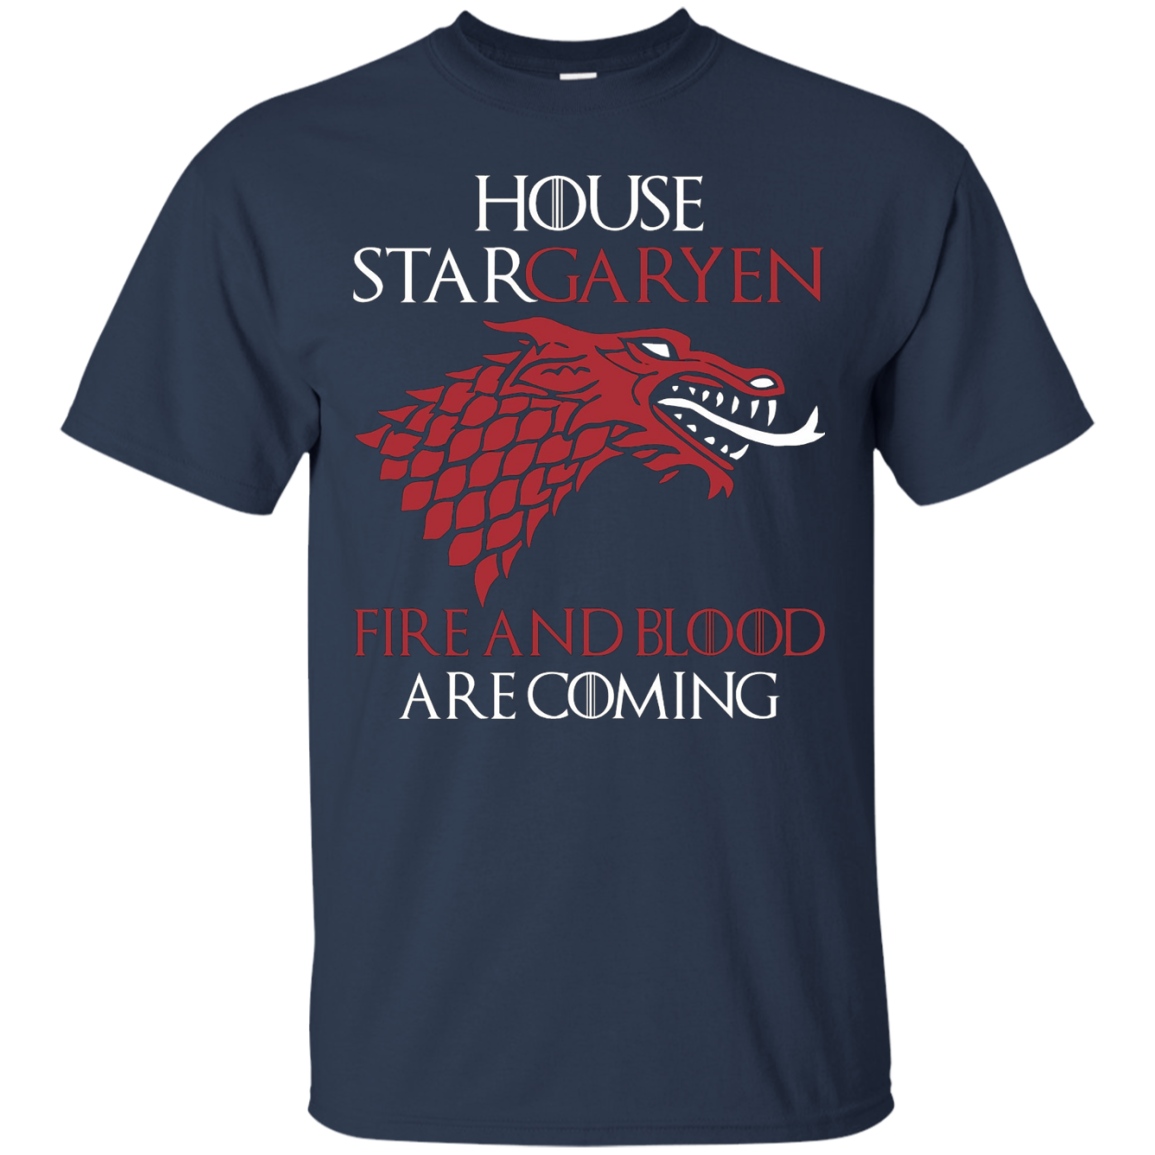 House StarGaryen Fire and Blood are coming - T-Shirt